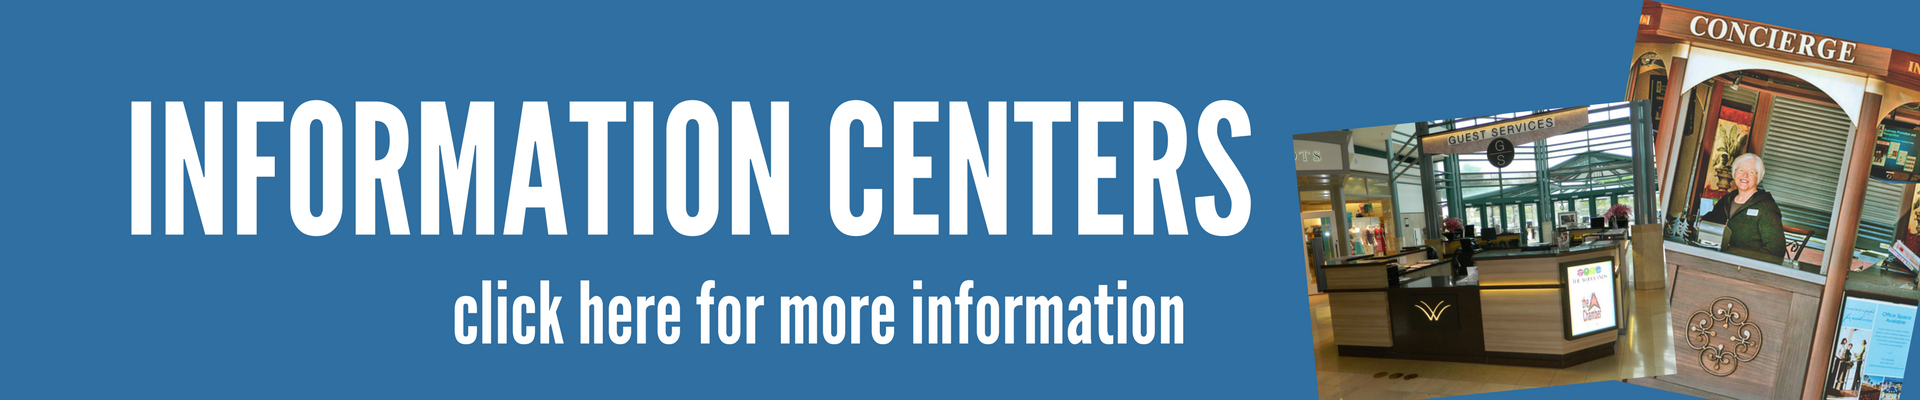 info-centers-button.png